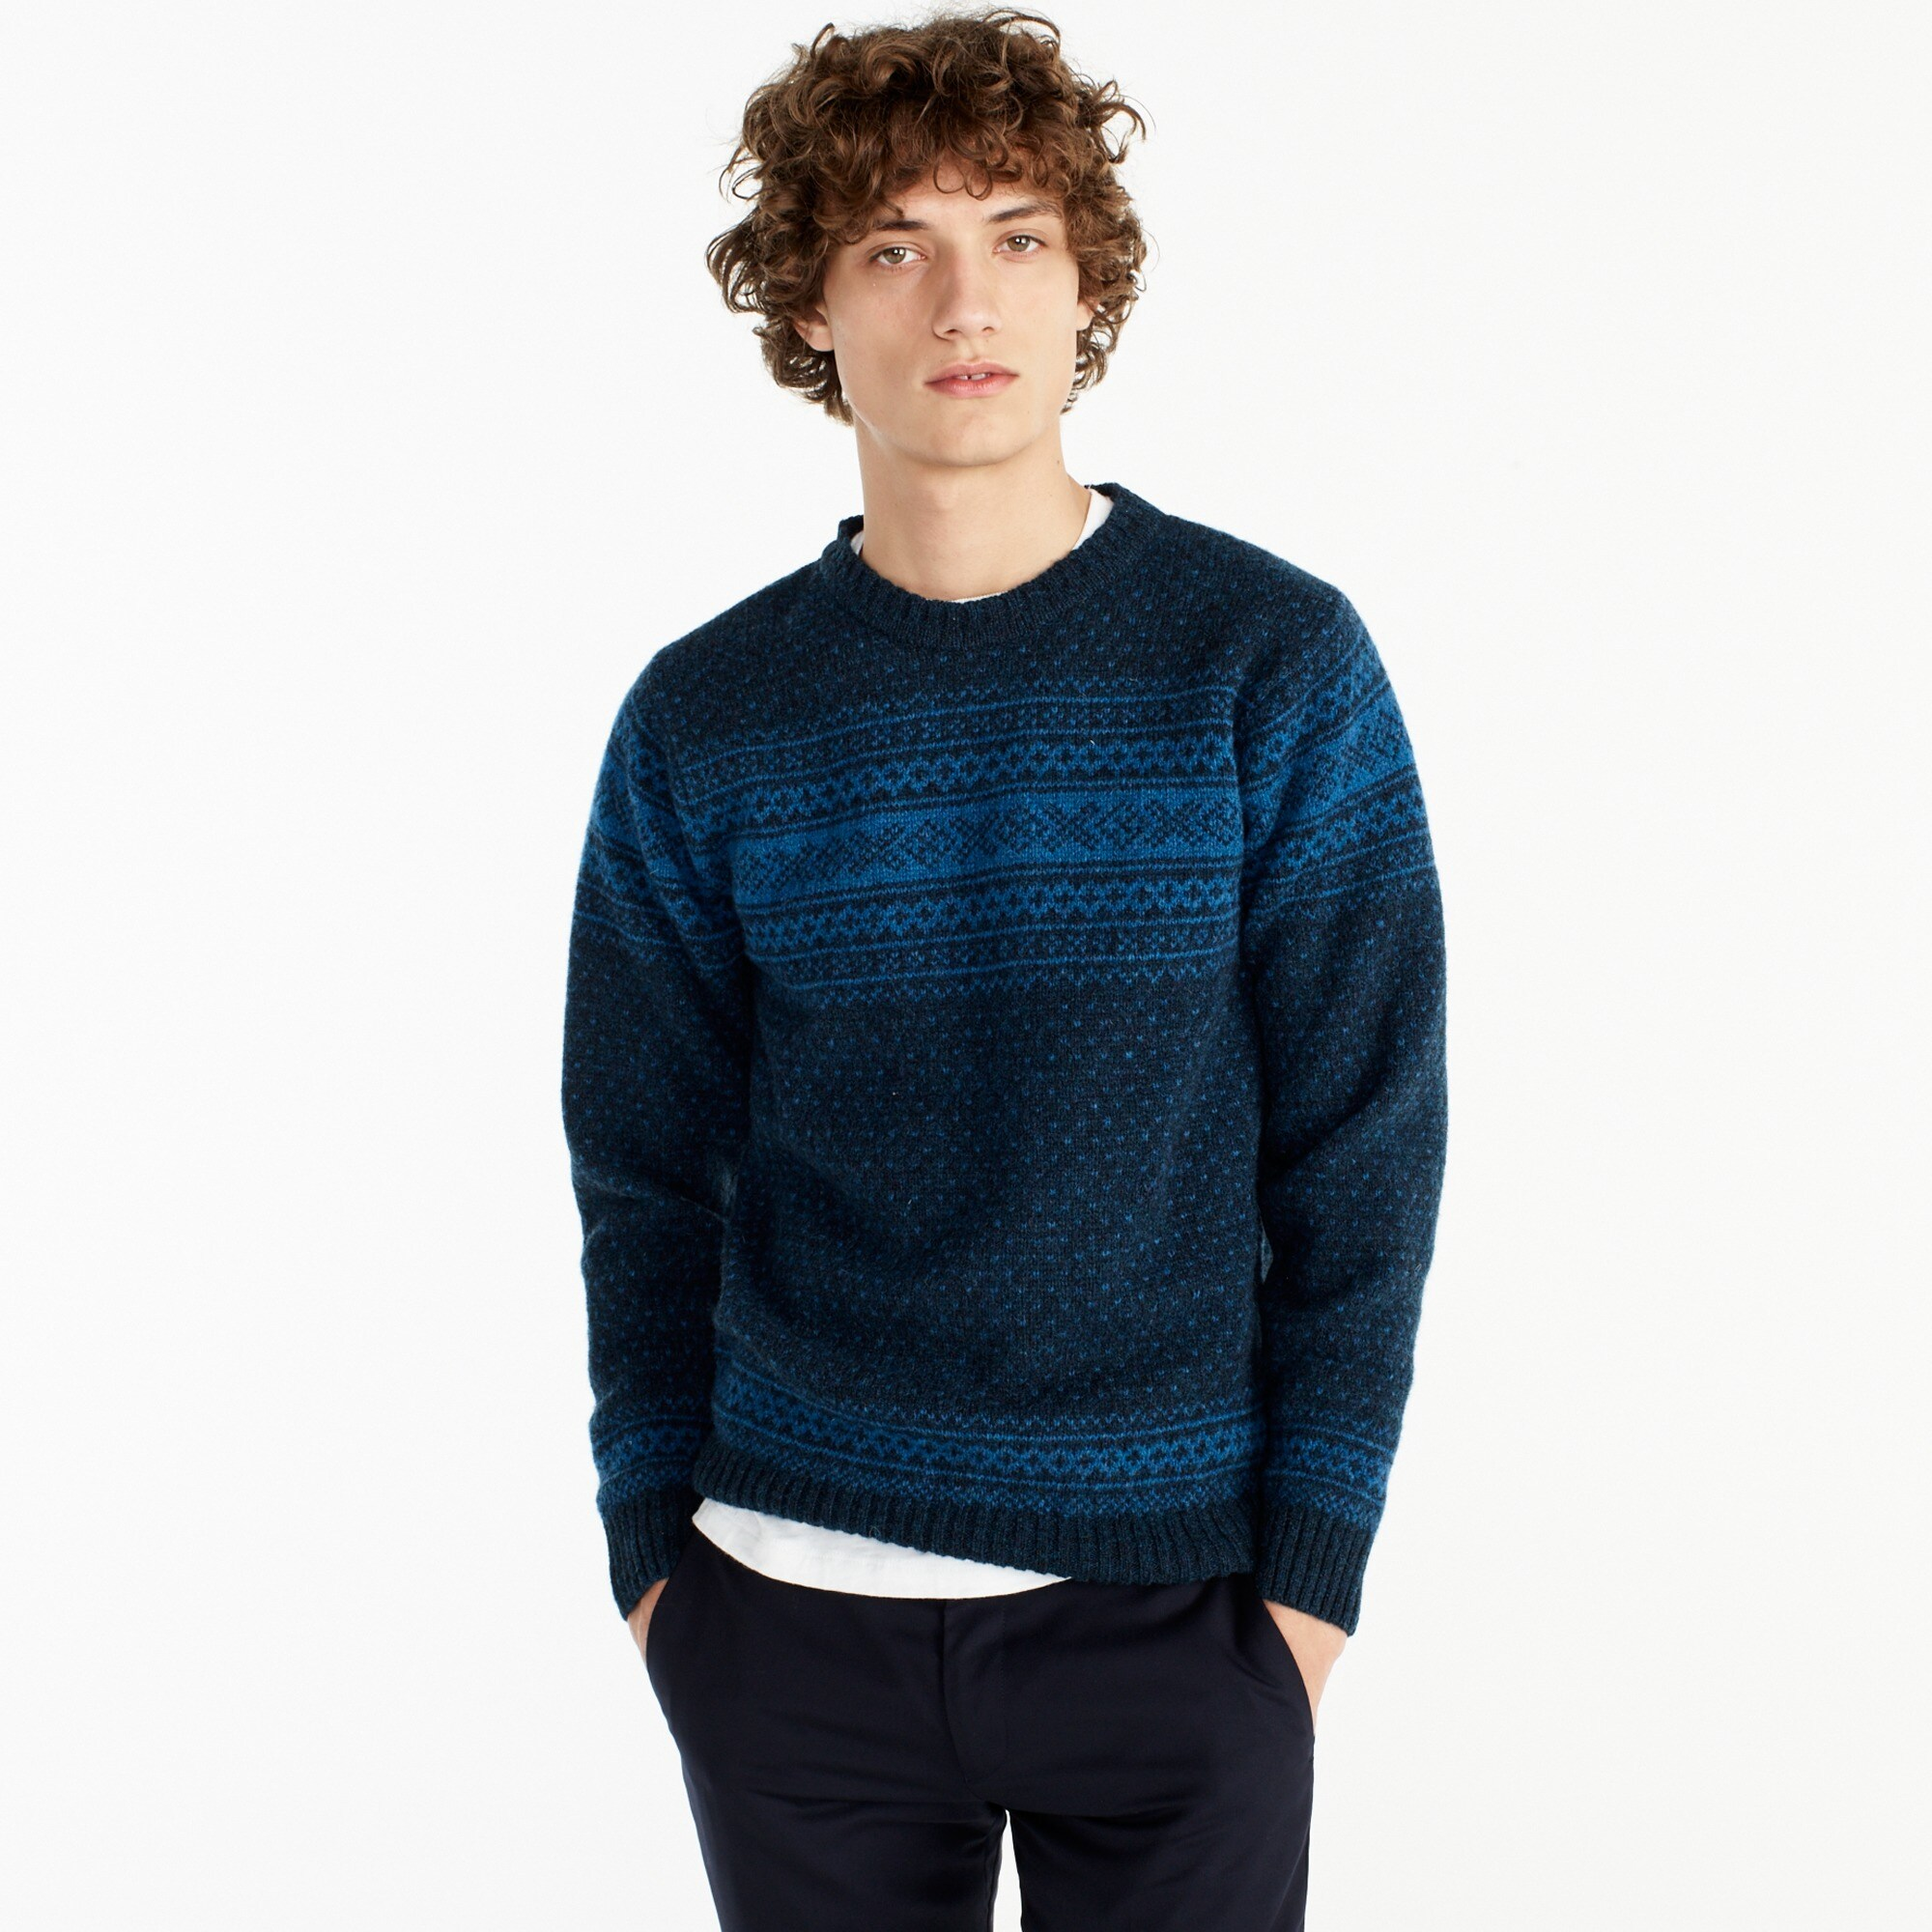 Harley of Scotland™ Nor'easterly sweater men j.crew in good company c